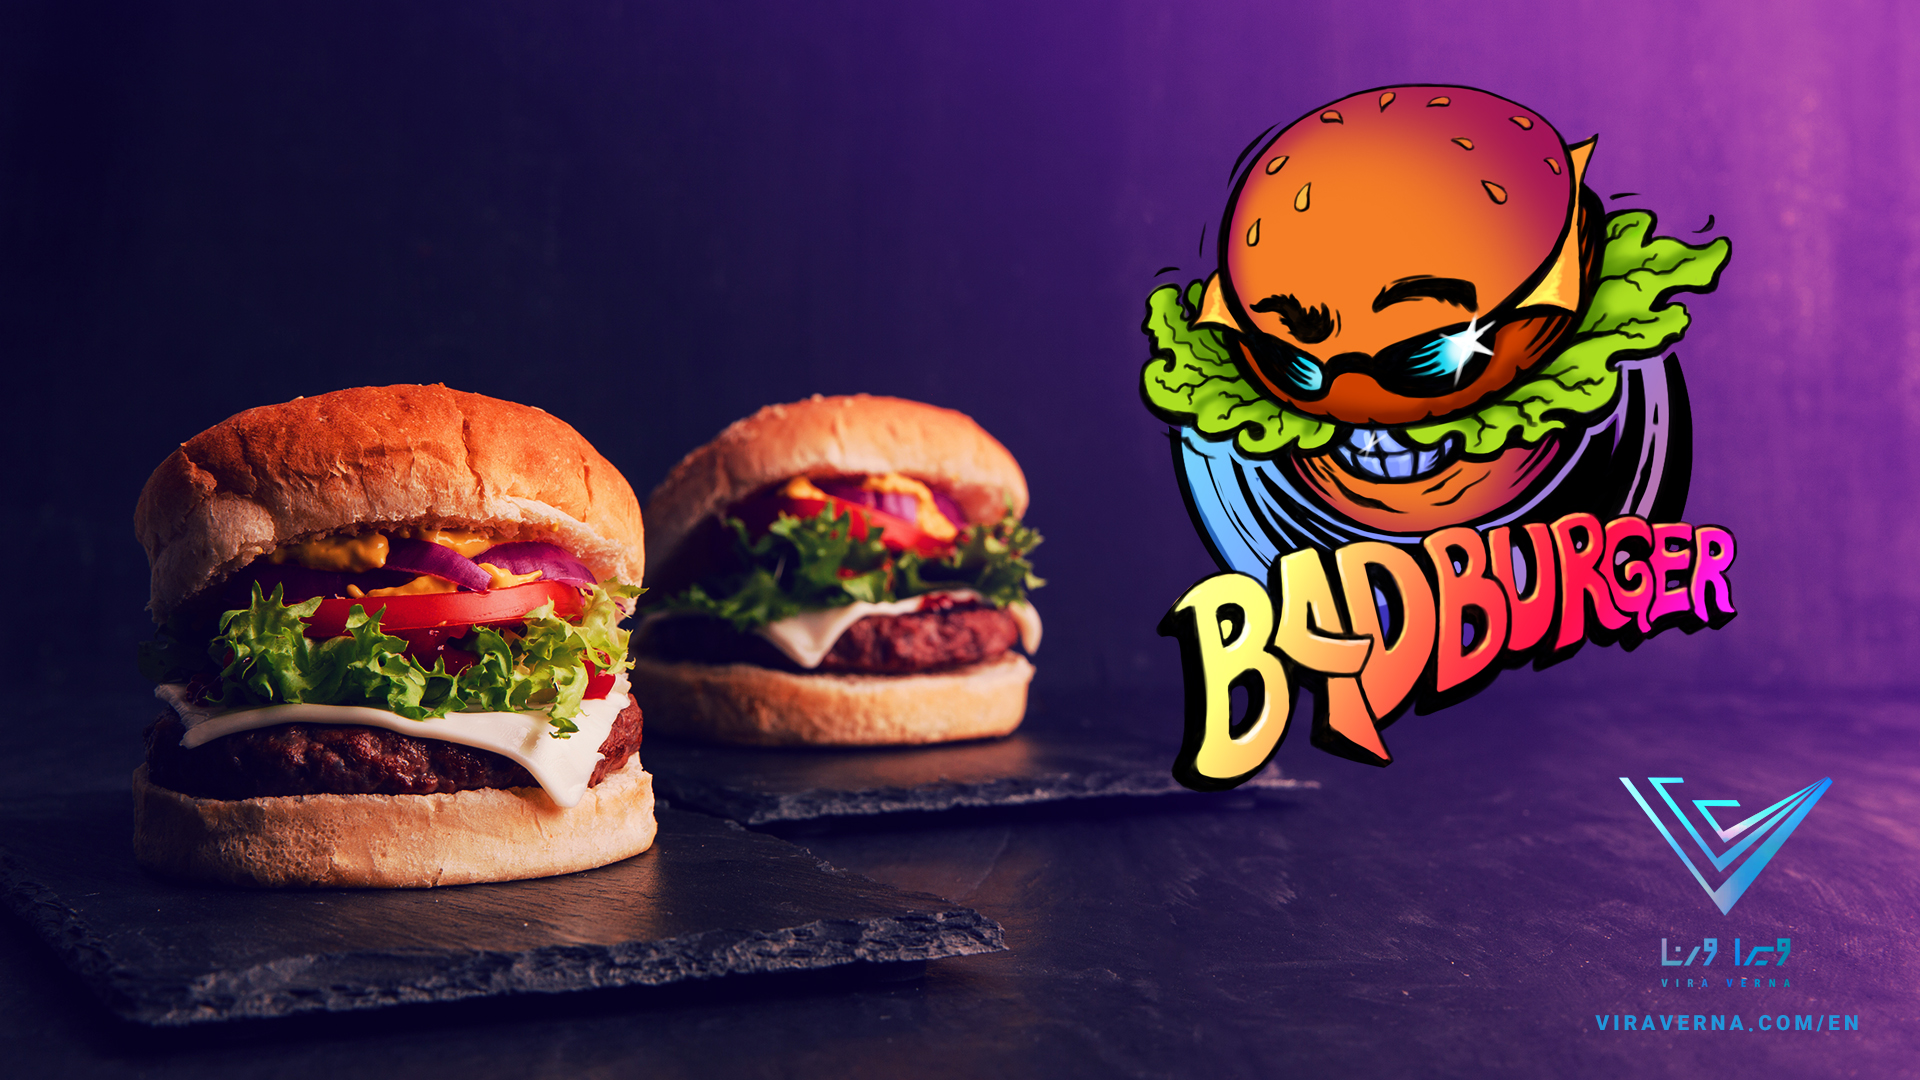 Logo design and branding for Bad Burger fast food